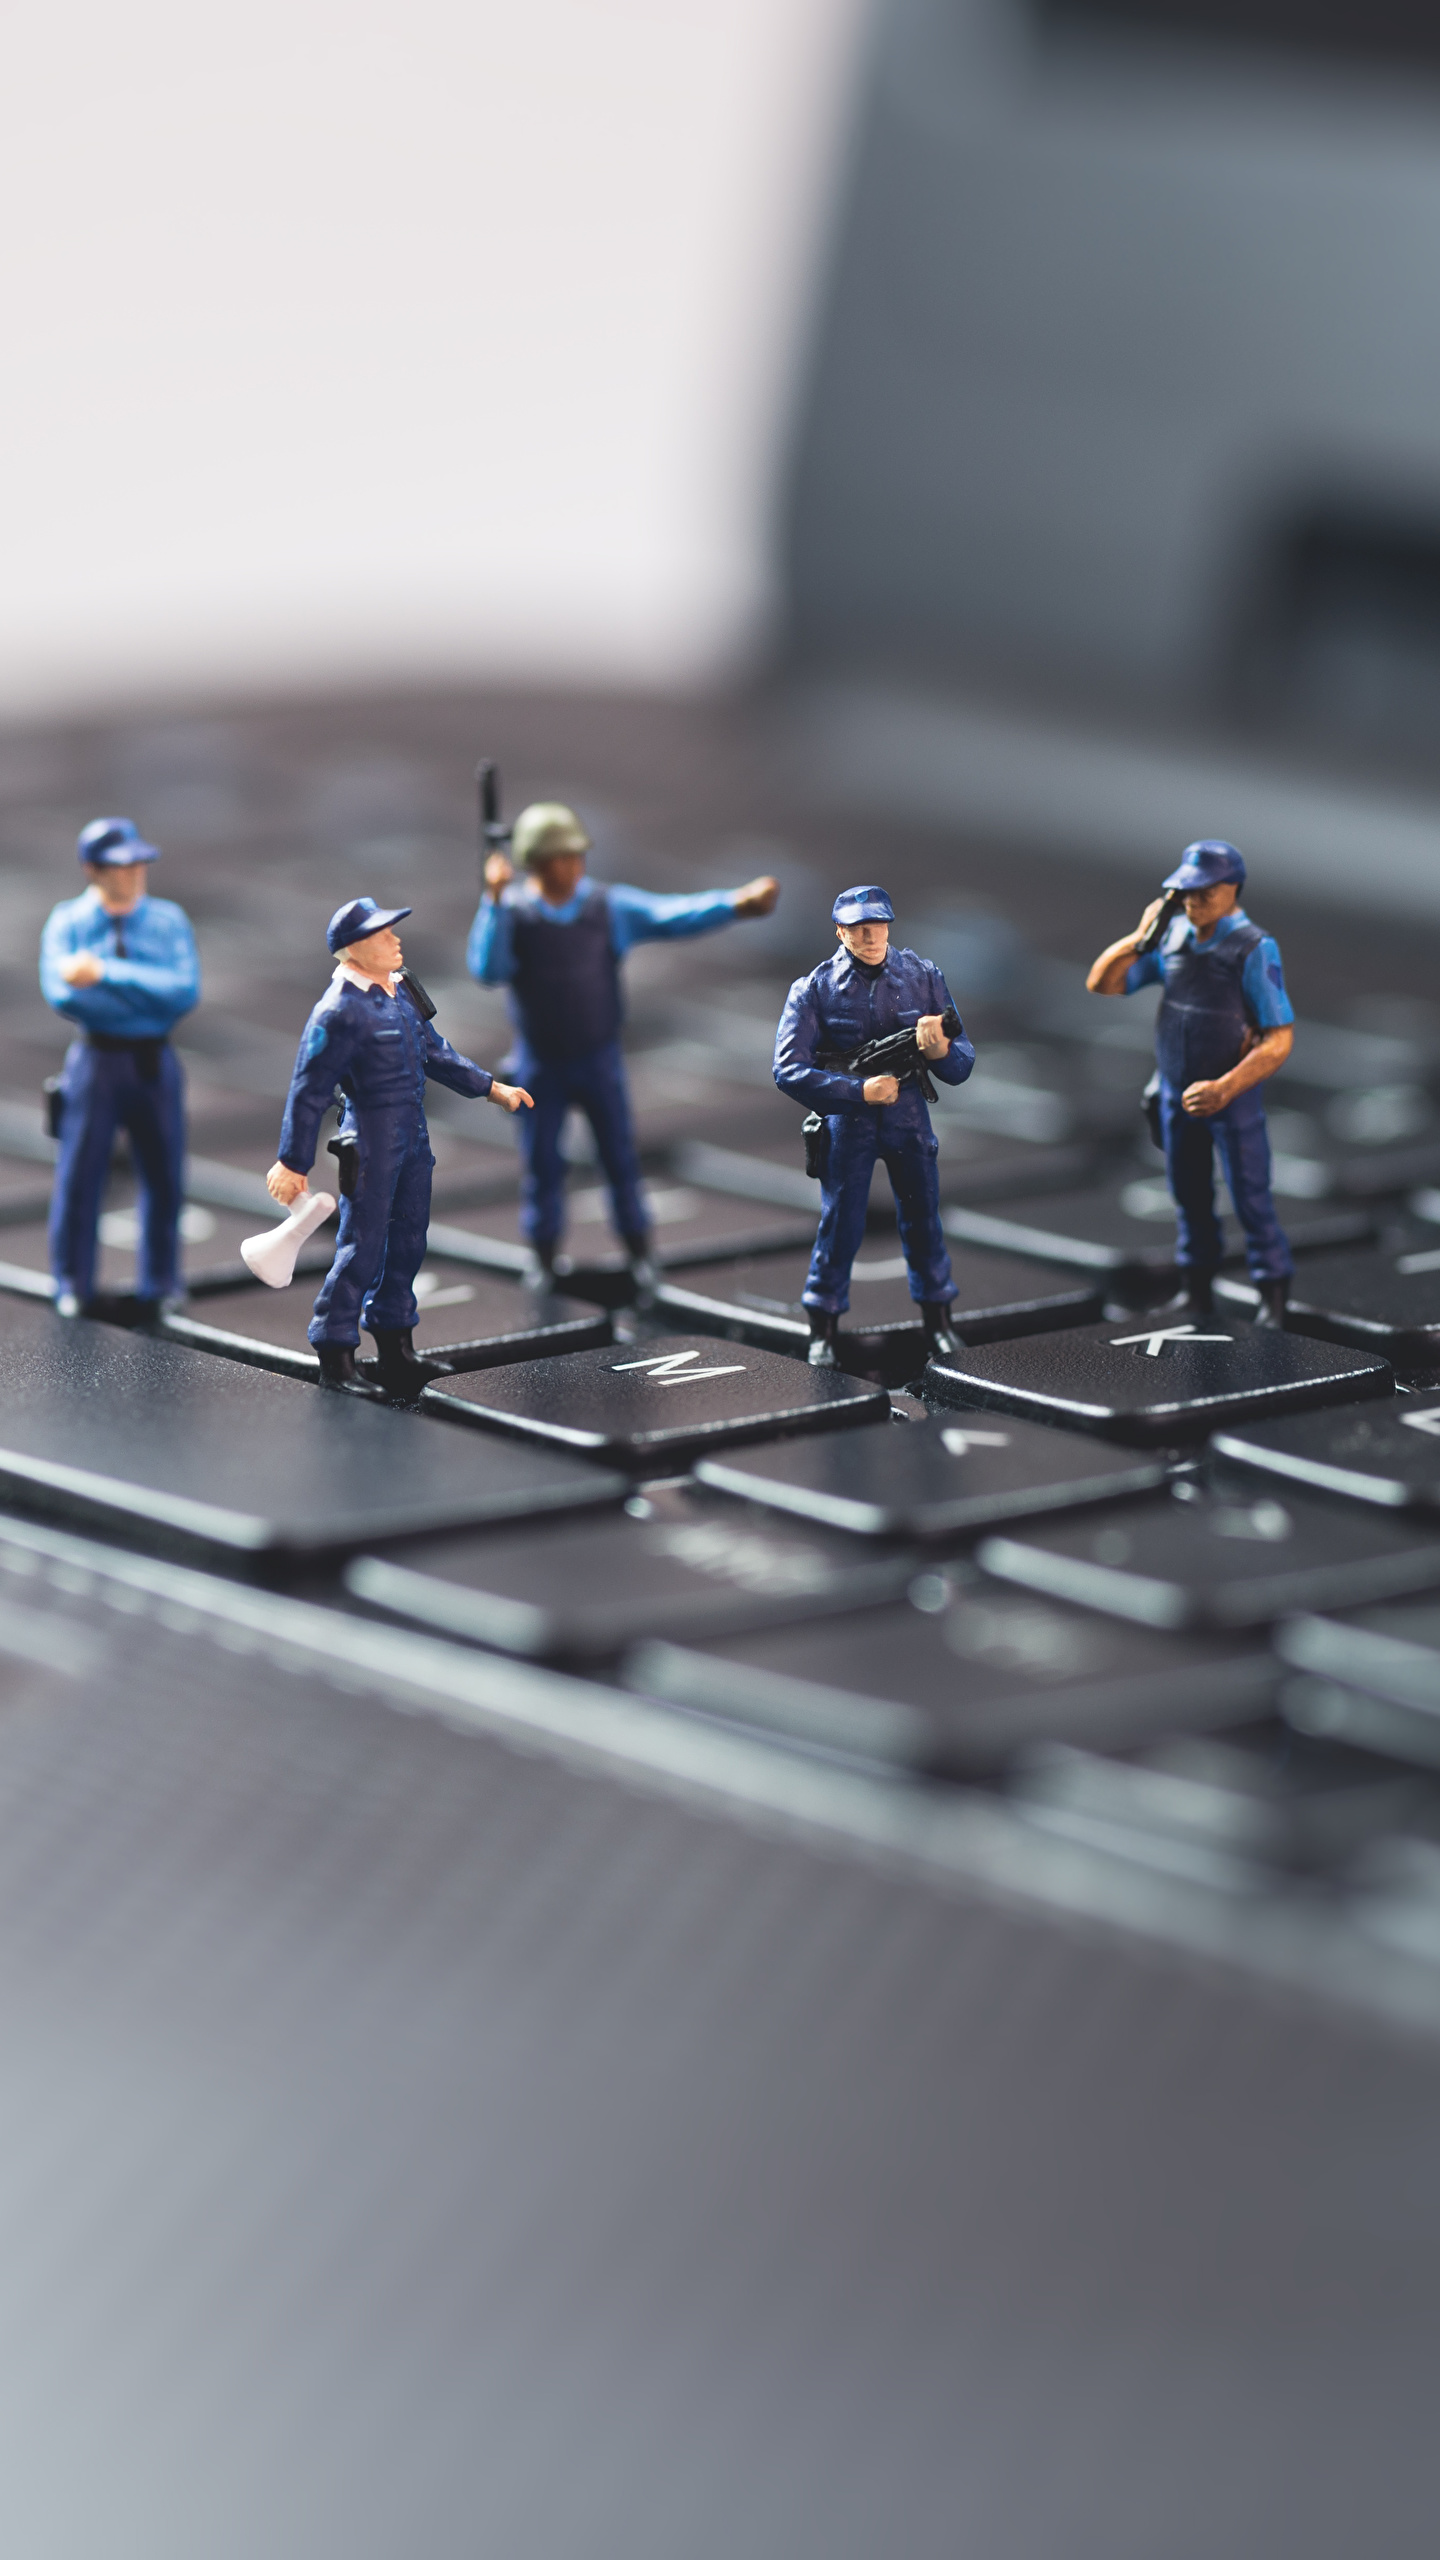 Pictures Laptops Keyboard Police Macro Toys Closeup 1440x2560